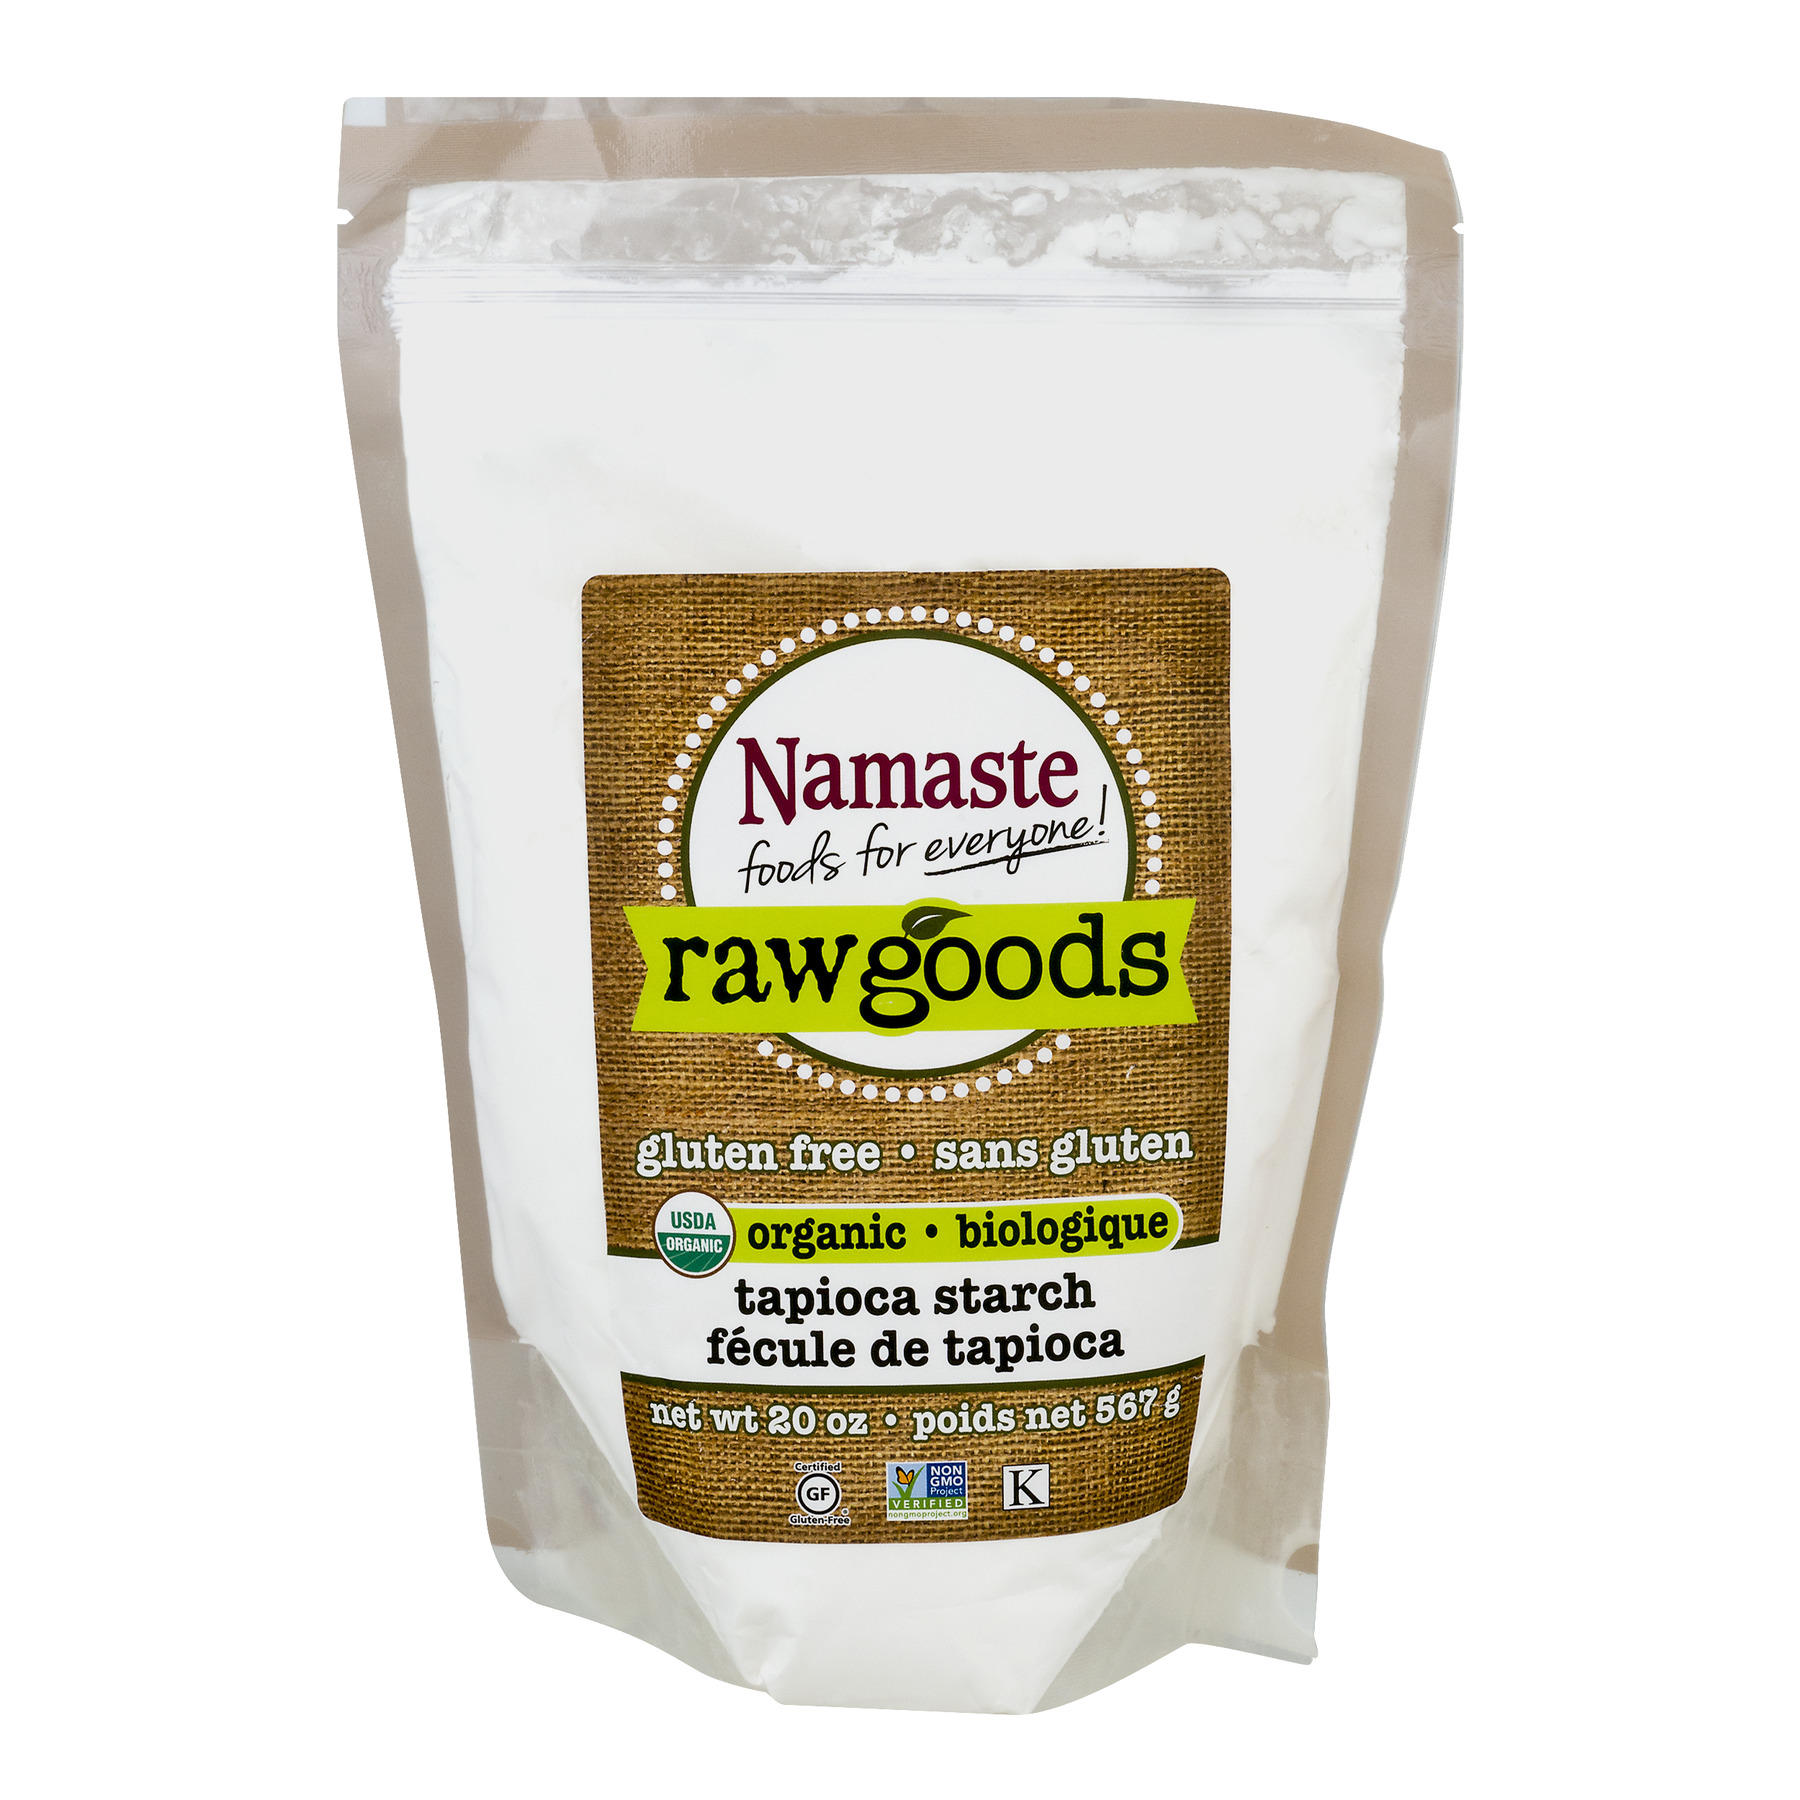 (2 Pack) Namaste Foods Raw Goods Gluten Free Organic Tapioca Starch, 20 oz